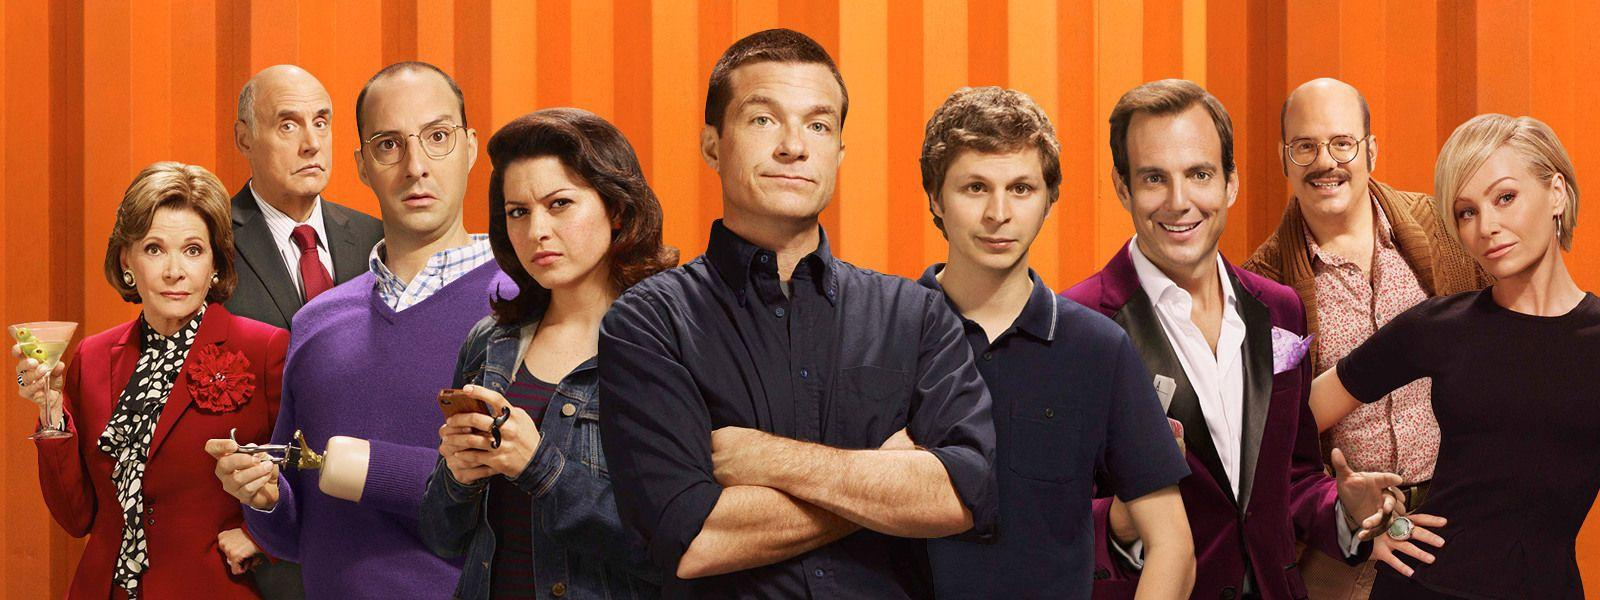 Arrested Development wallpapers, TV Show, HQ Arrested Development